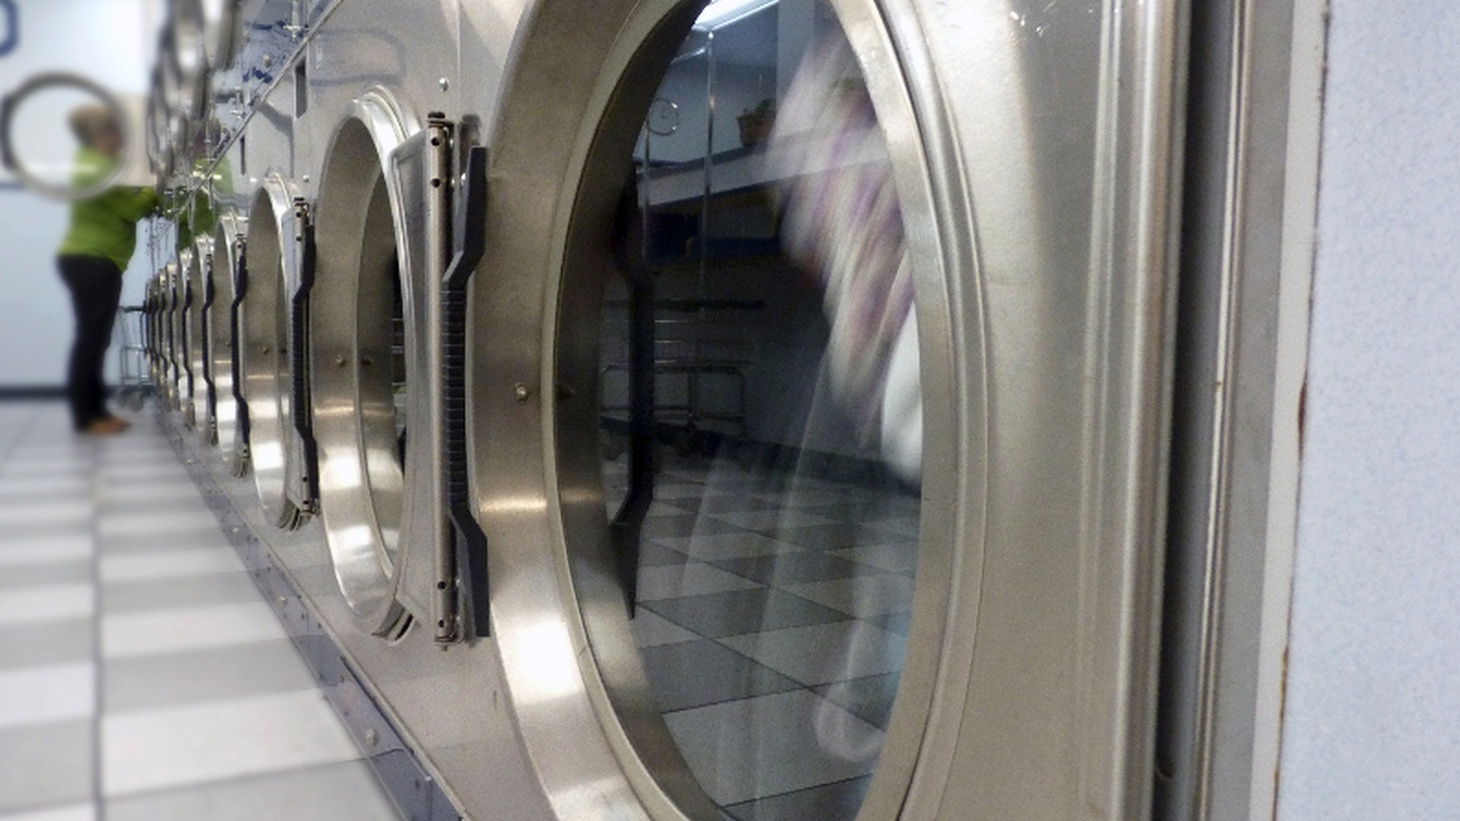 Every Sunday, Matthew Meltzer hauls his dirty clothes to his local laundromat and spends several hours doing a mundane task. Yet, somehow, he loves it. Mostly.   --Produced by Andrew Wardlaw